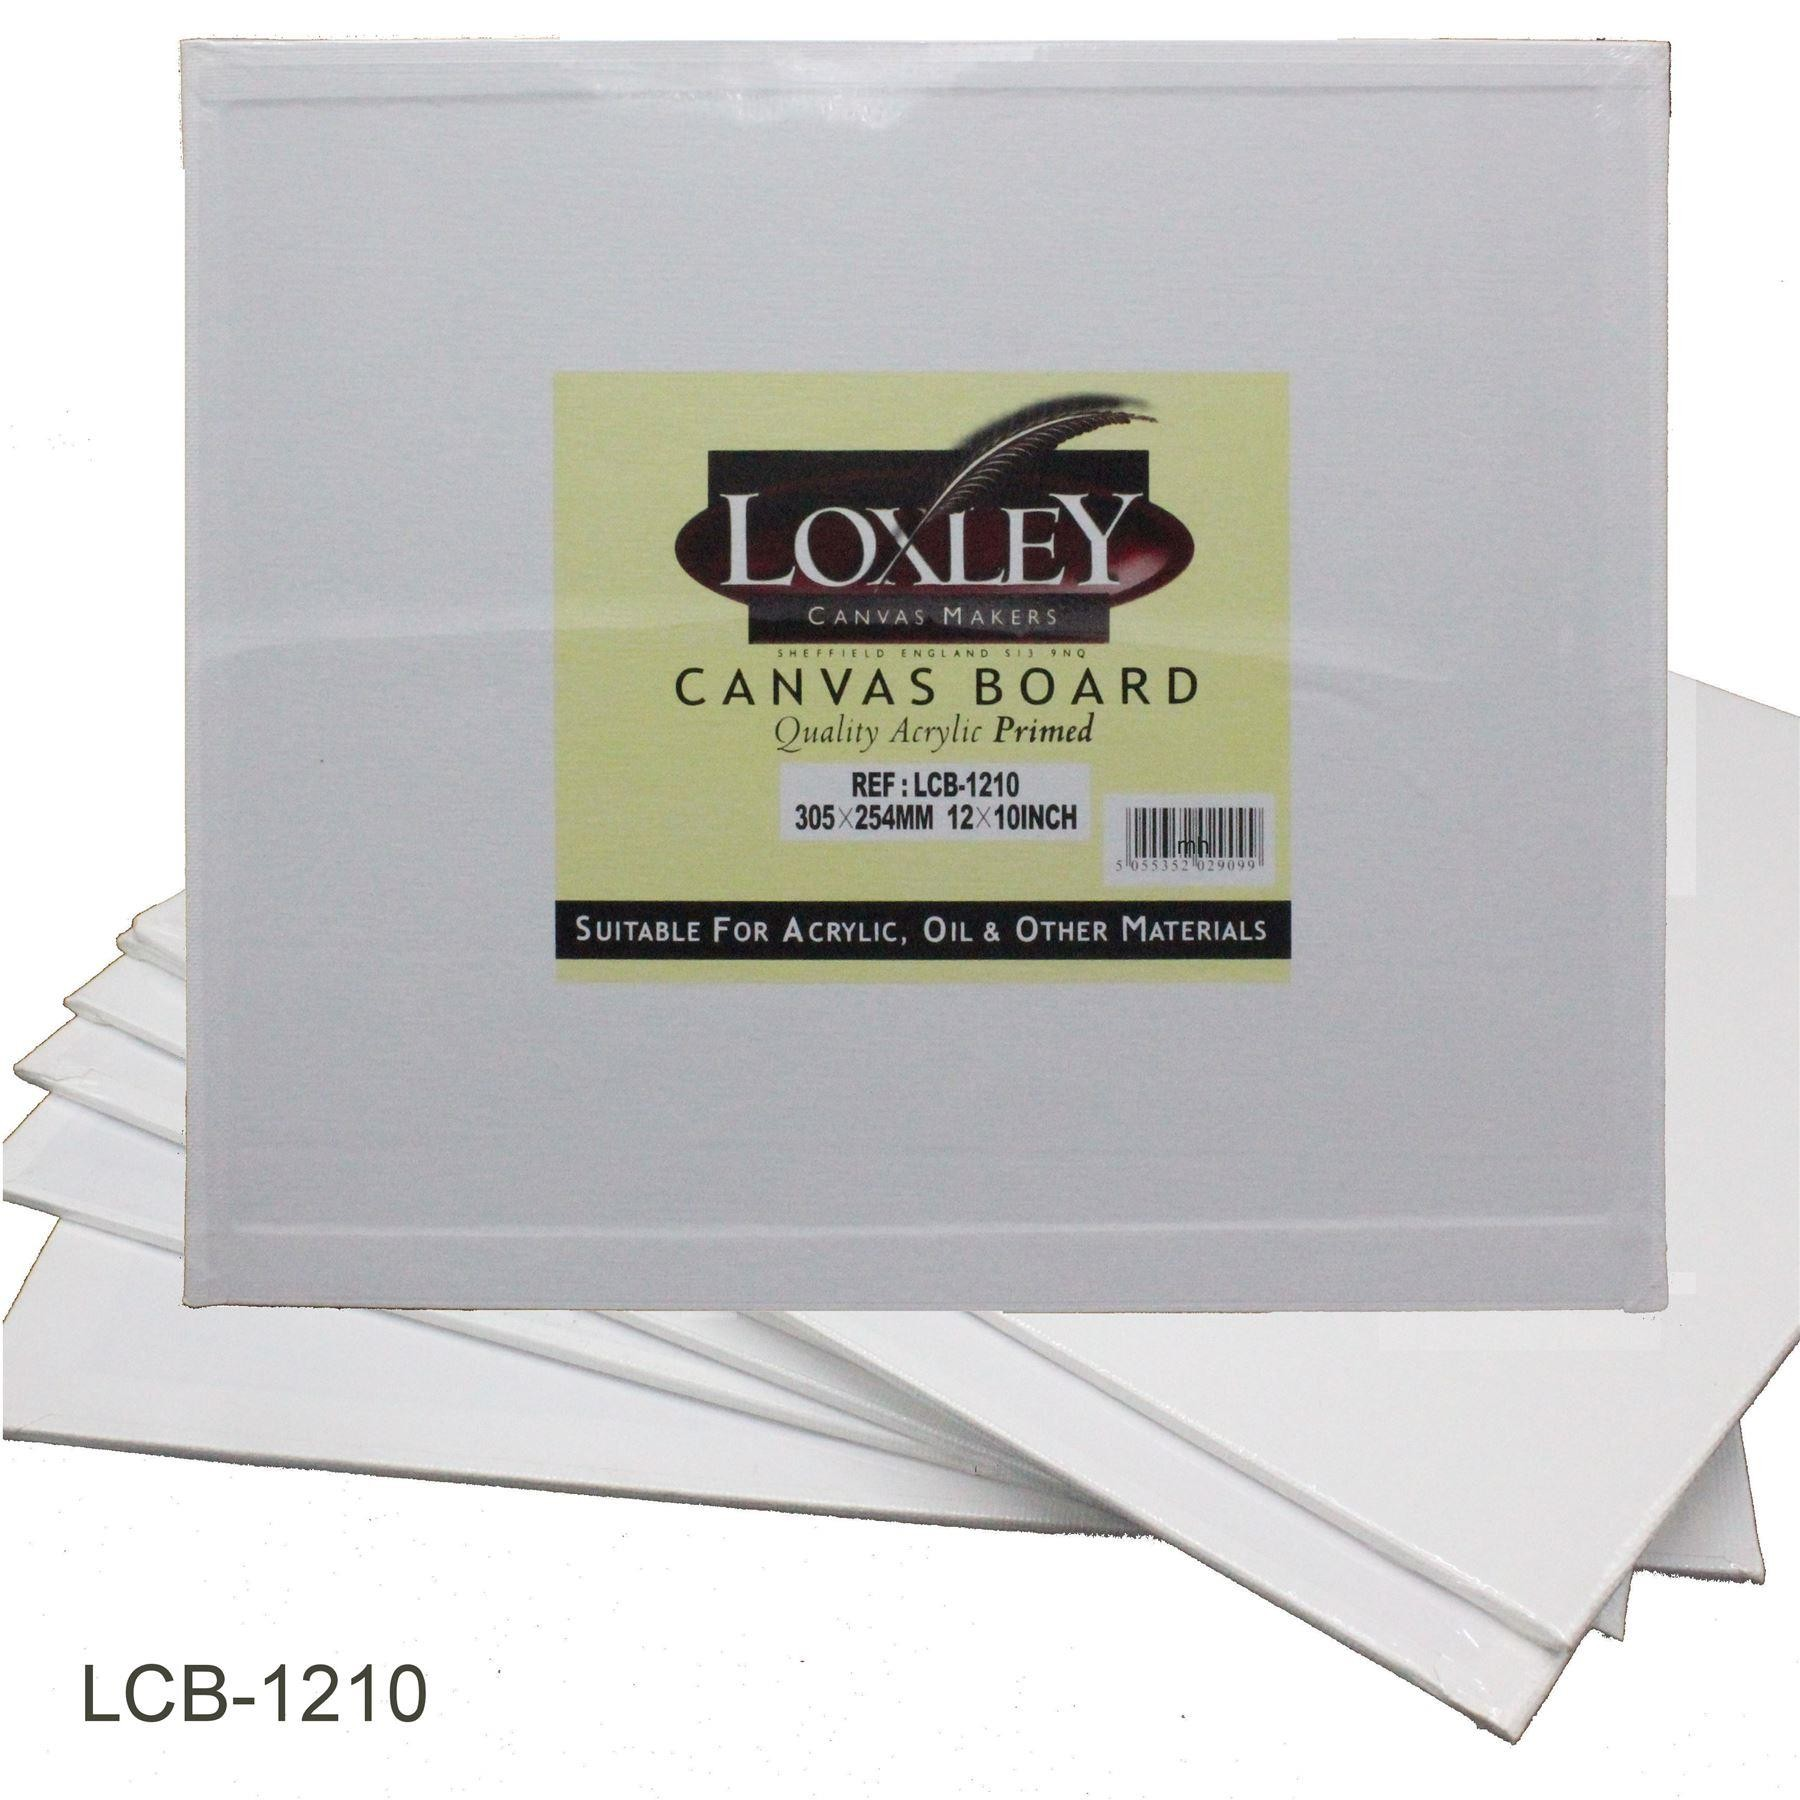 "Double Primed Acrylic Canvas Board from Loxley - 12"" x 10"""